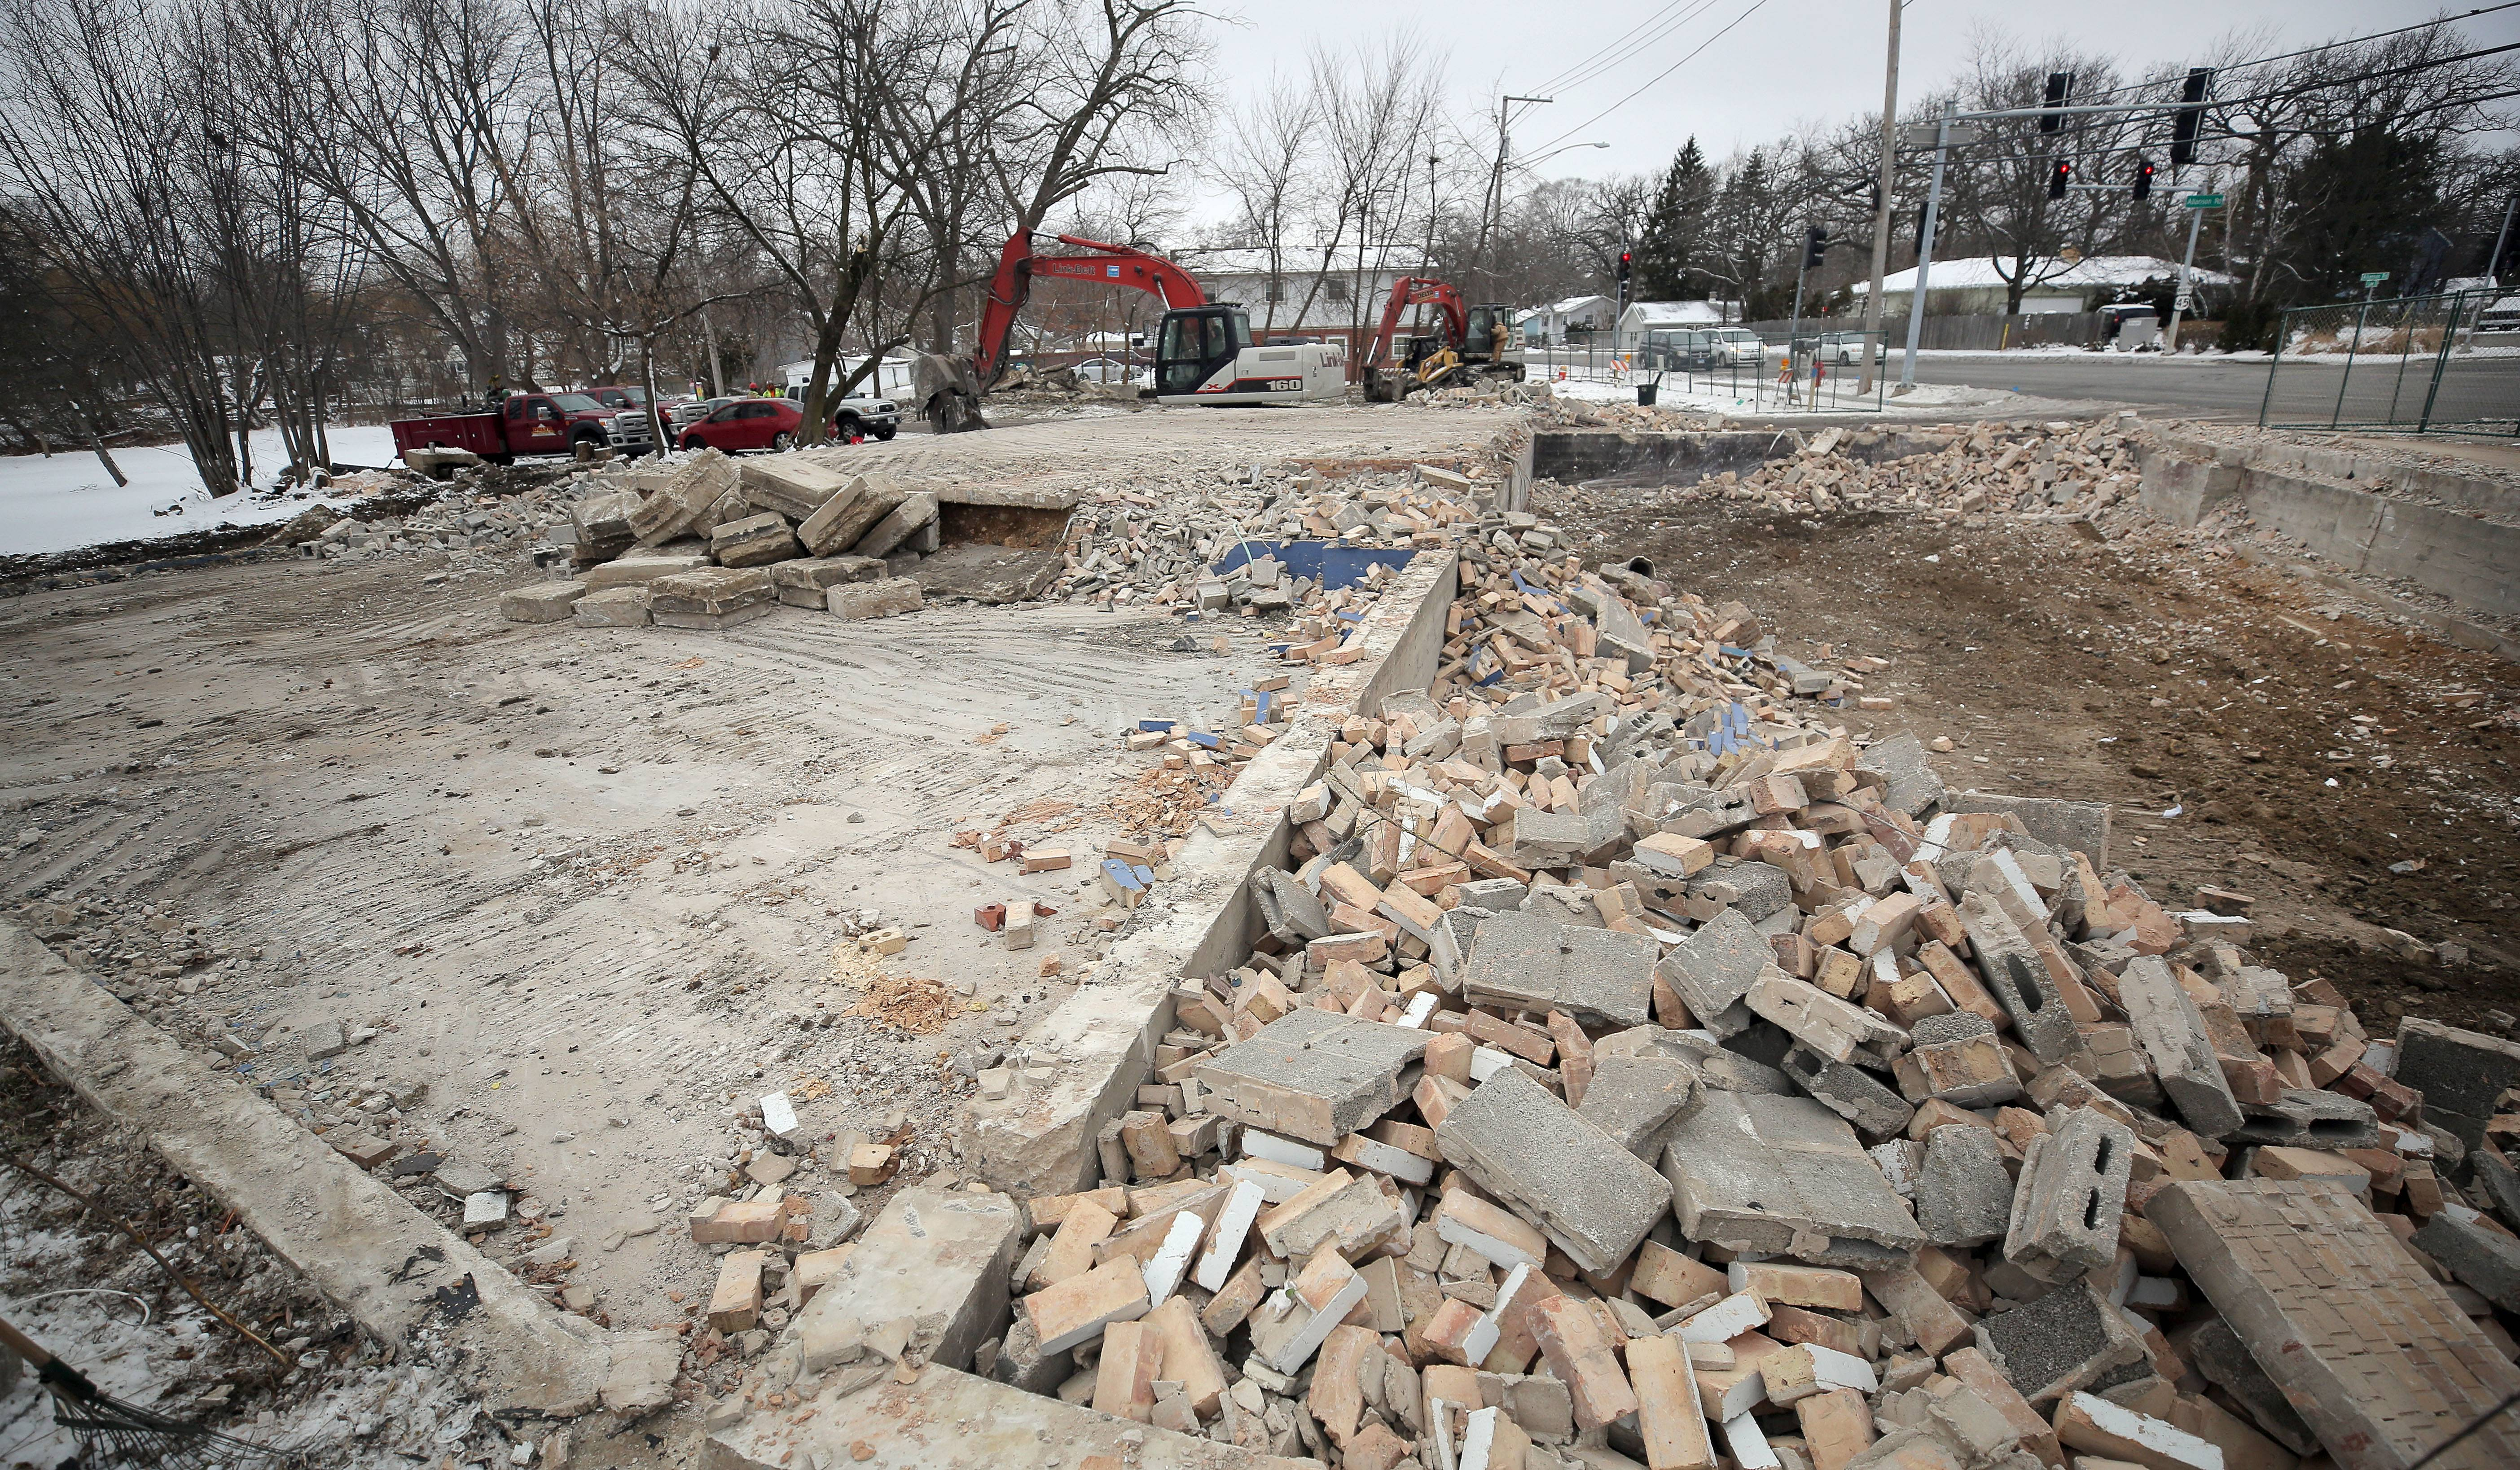 Demolition of buildings on the 600 block of South Lake Street in Mundelein continued Tuesday. The village plans to build a park there and on the land to the north, where Mundelein Apartments now stands.